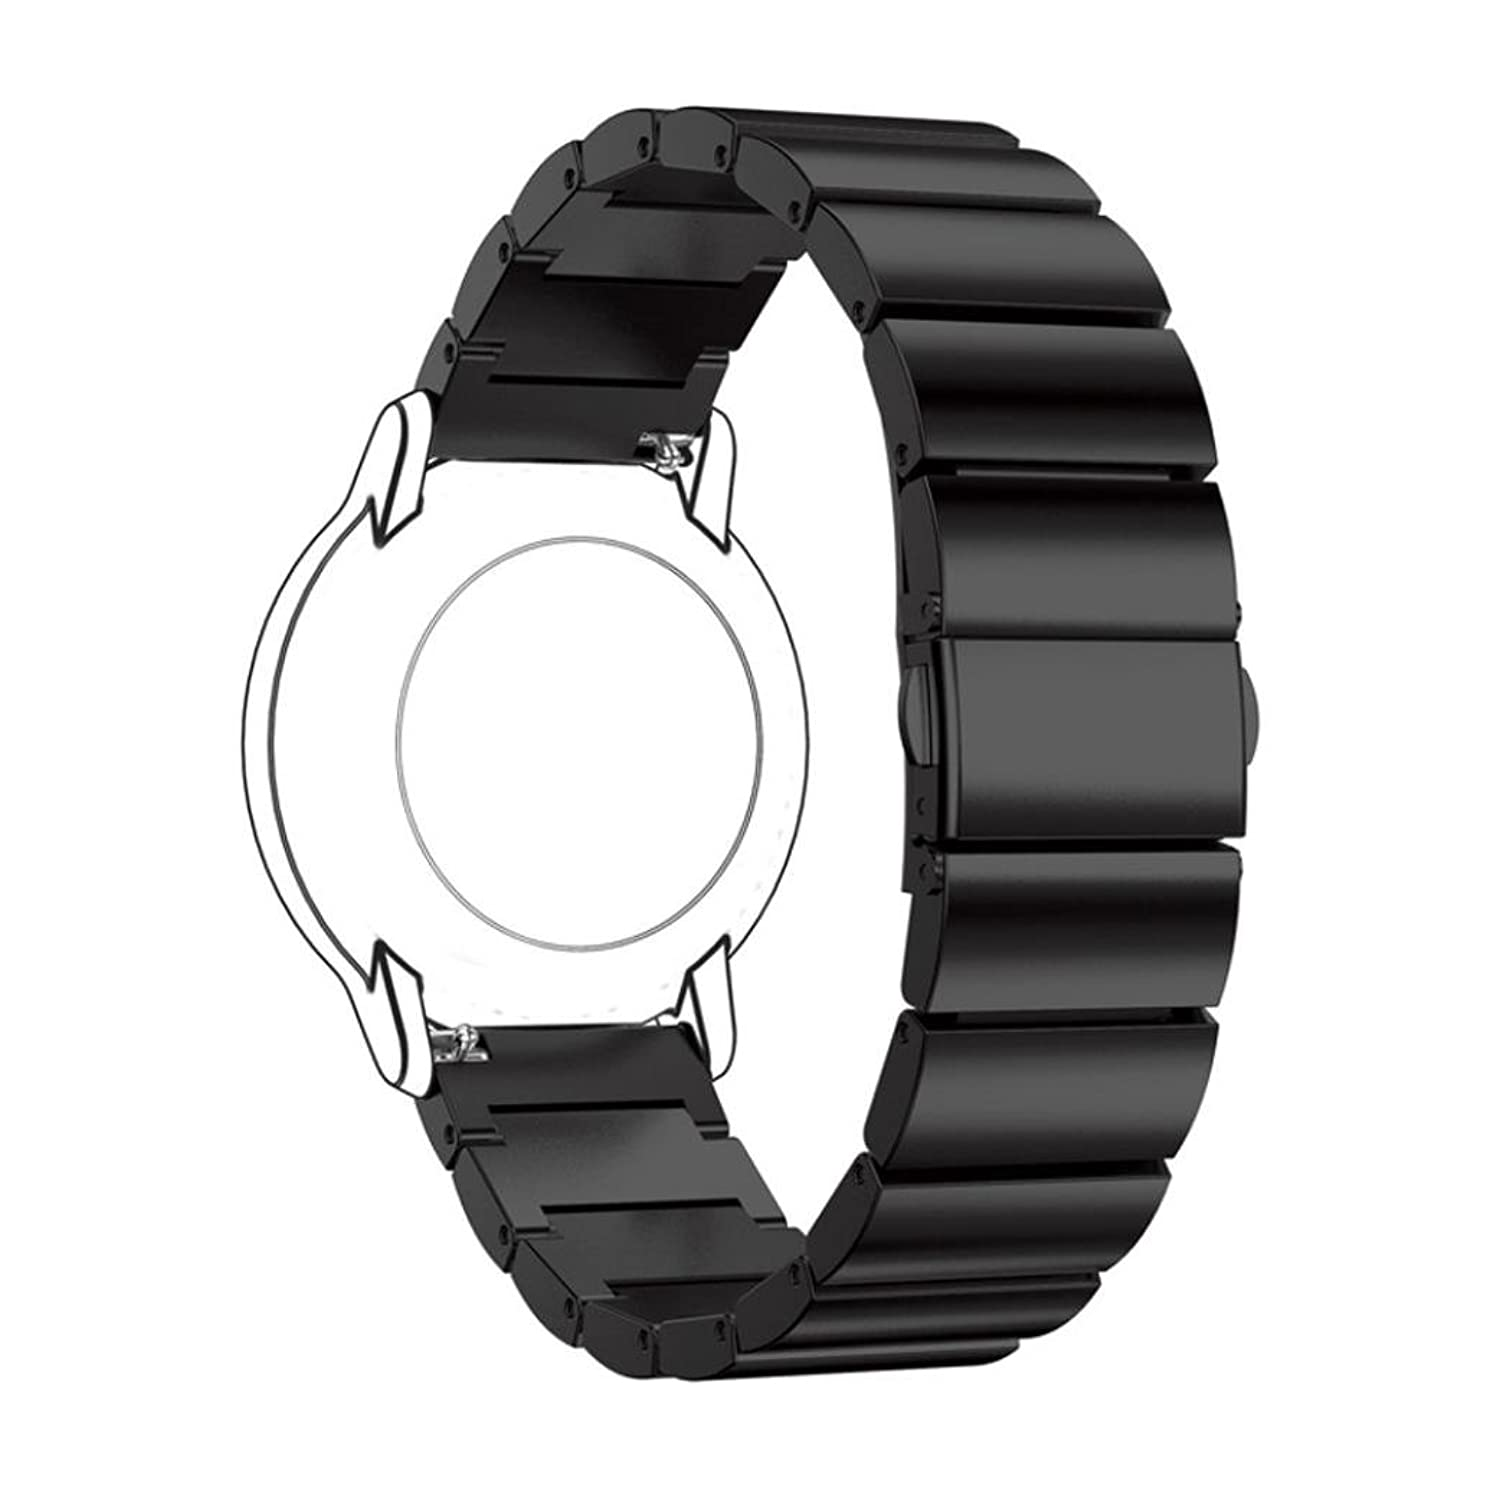 Amazon.com: Alonea Stainless Bracelet Smart Watch Band Strap ...